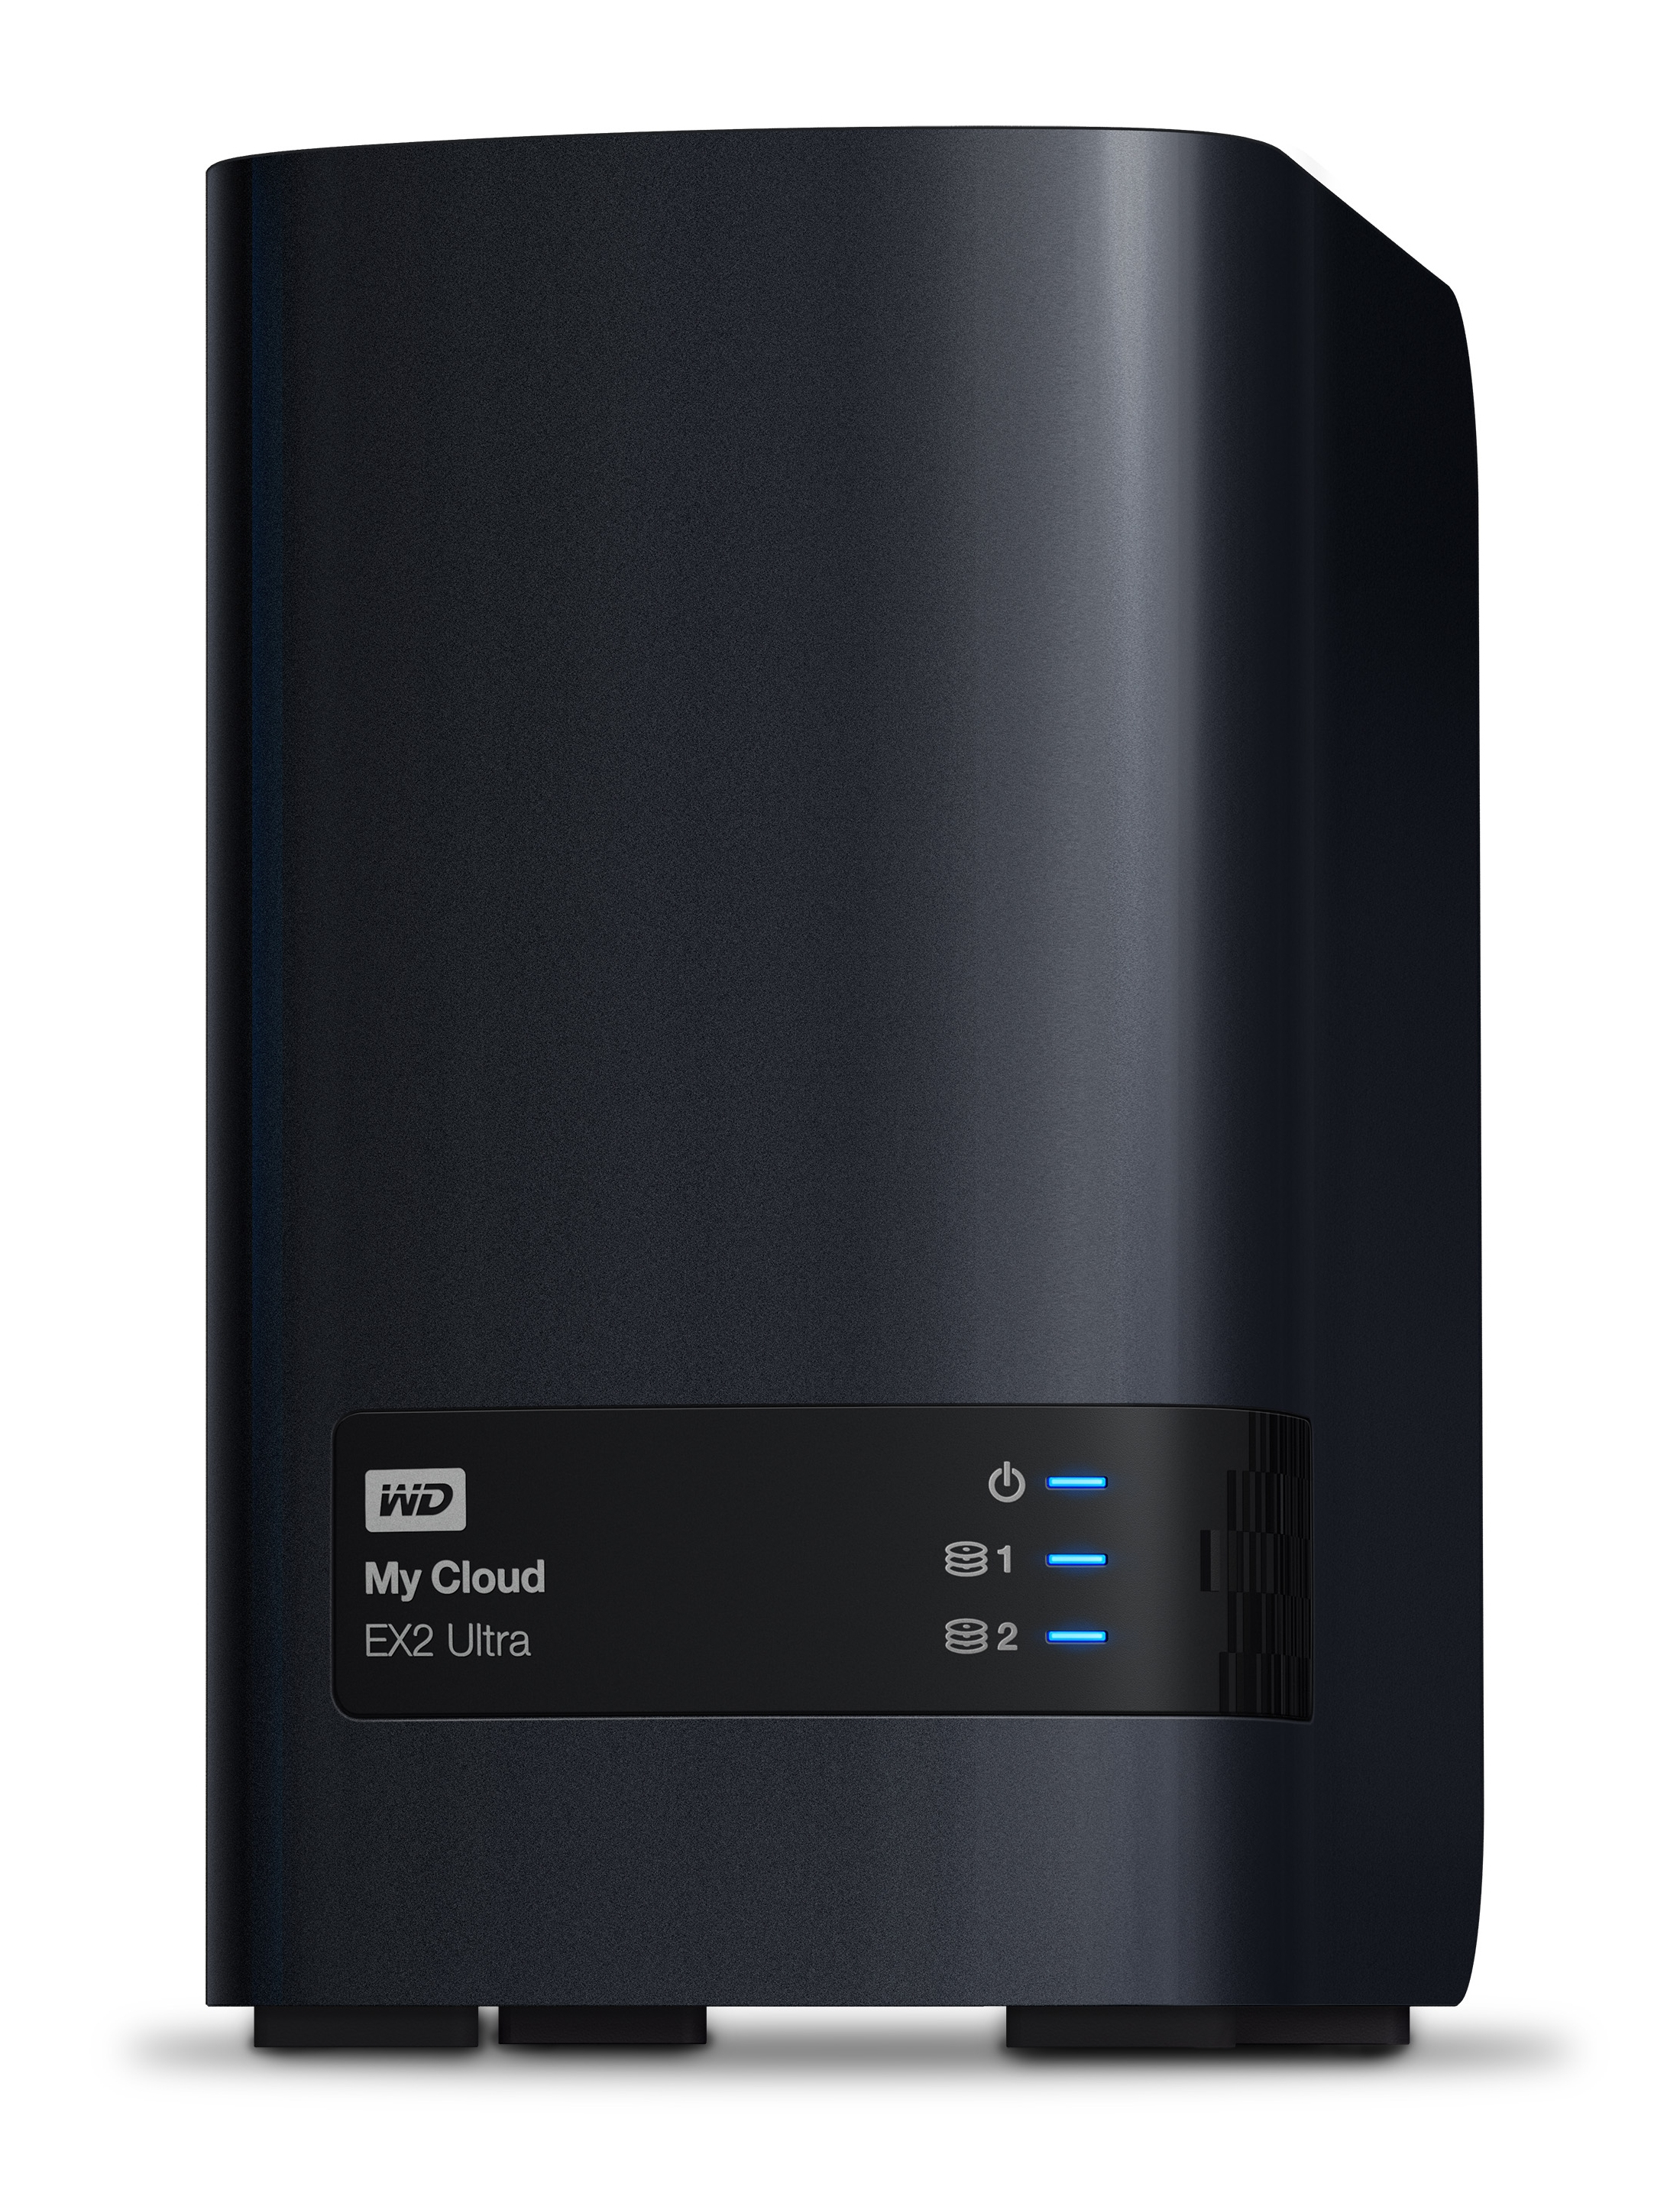 WD My Cloud EX2 Ultra - NAS - Desktop - Marvell - Armada 385 - 6 TB - Schwarz